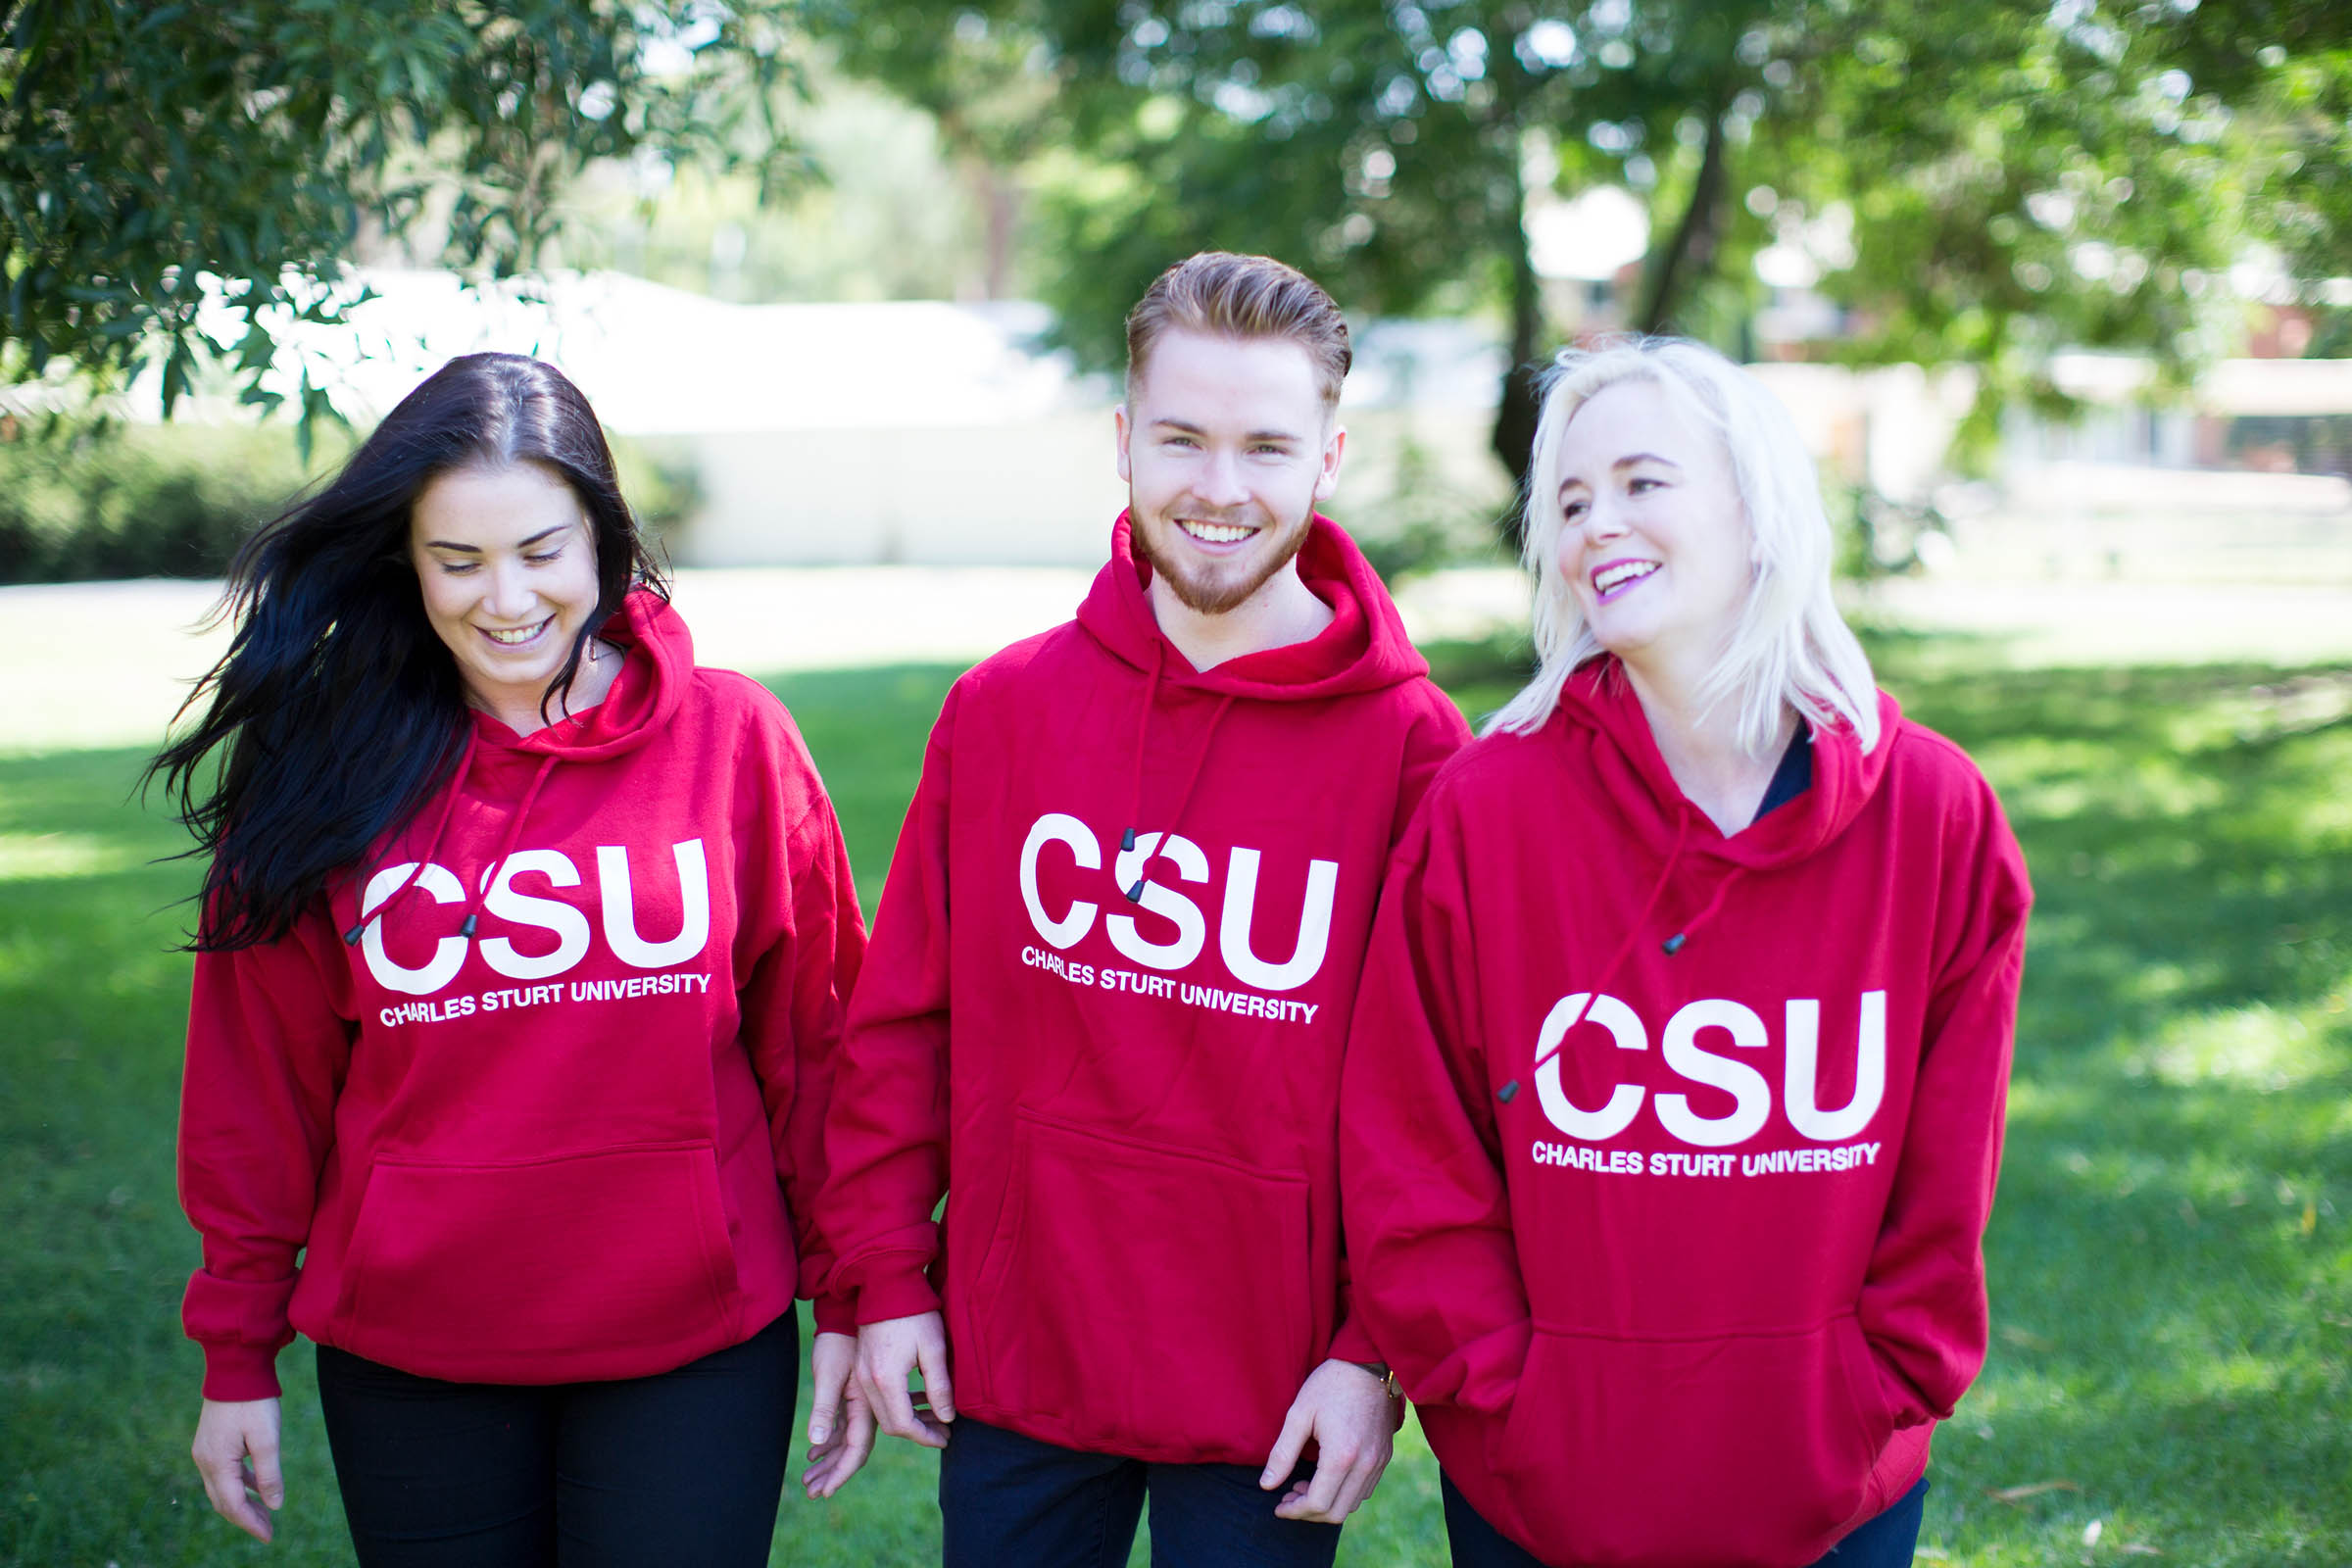 10 signs you went to uni at CSU